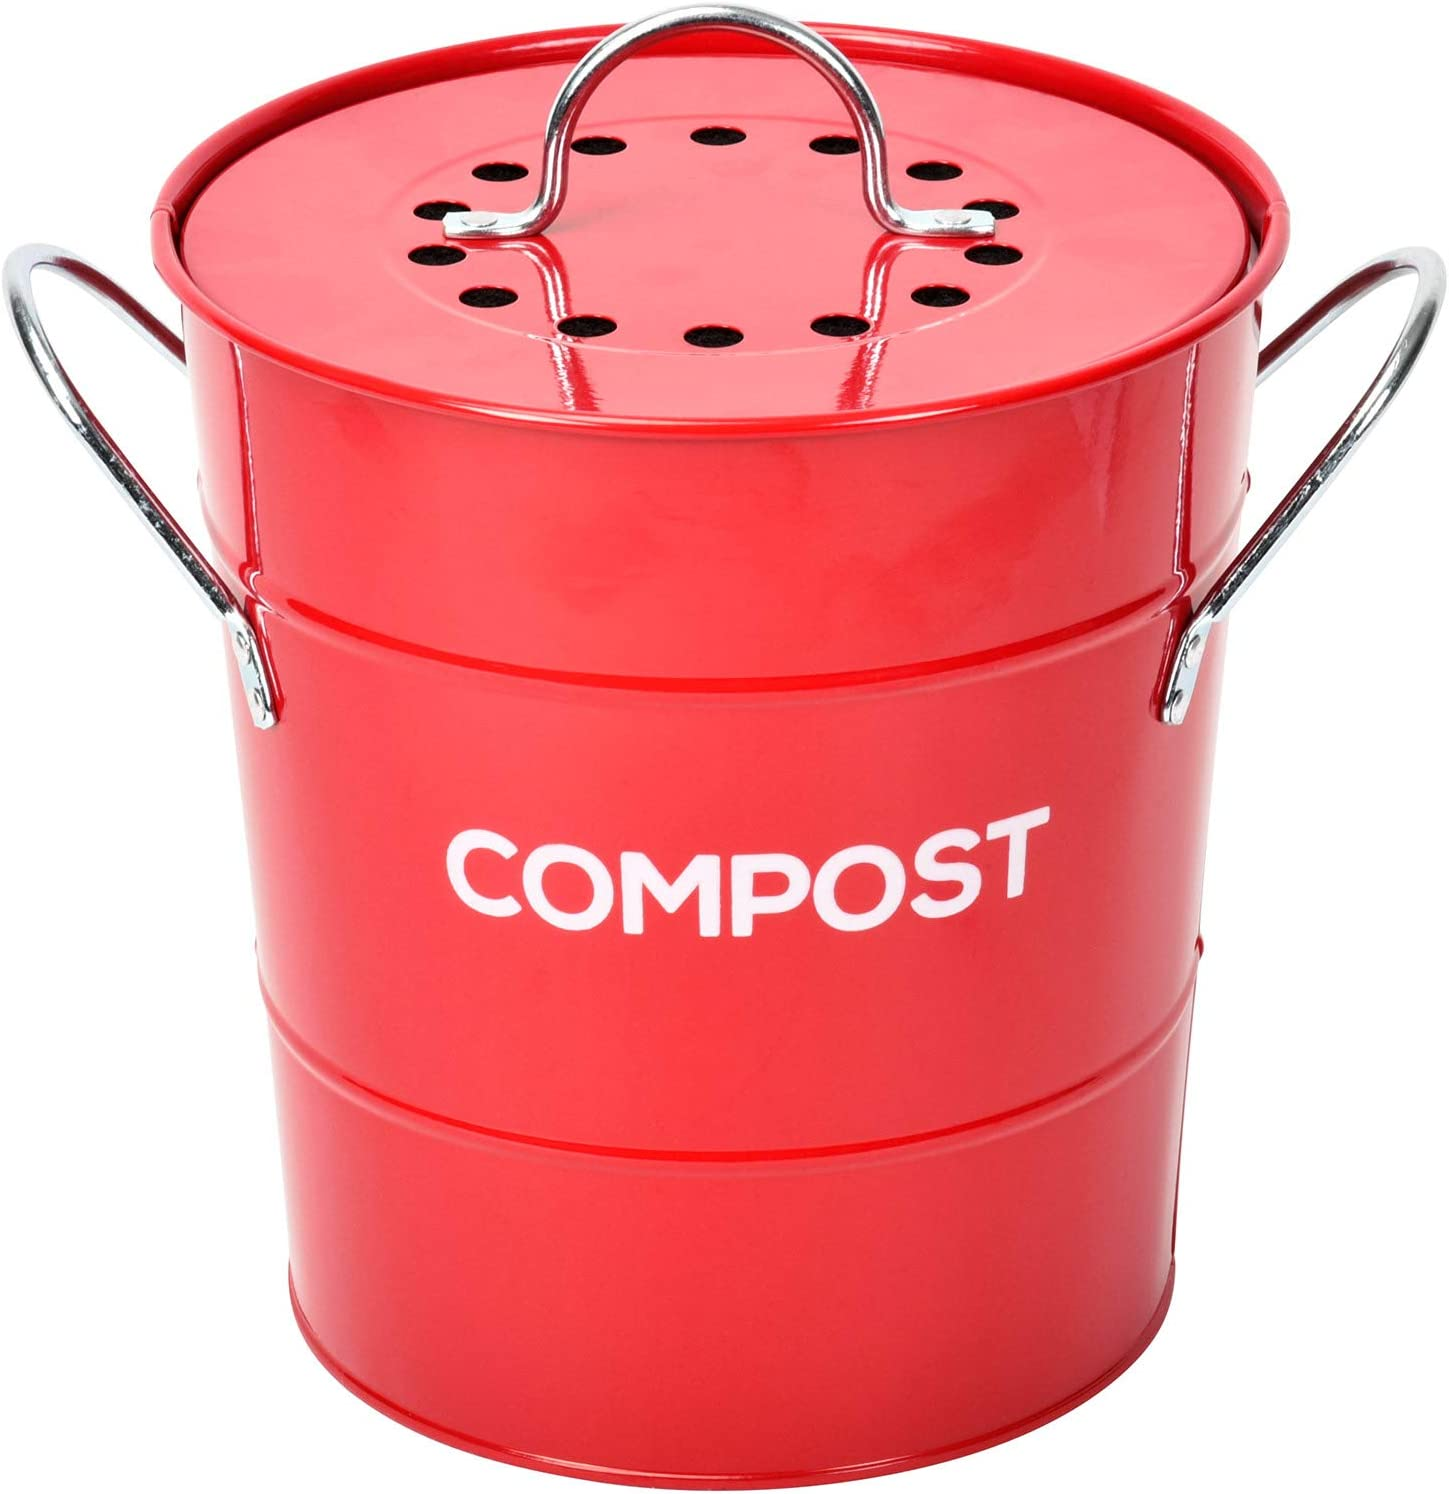 Spigo Indoor Kitchen Compost BIN, Great for Food Scraps, Includes Charcoal Filter for Odor Absorbing, Removable Clean Plastic Bucket, Handles, Durable Stainless Retro Design 1 Gallon, Red